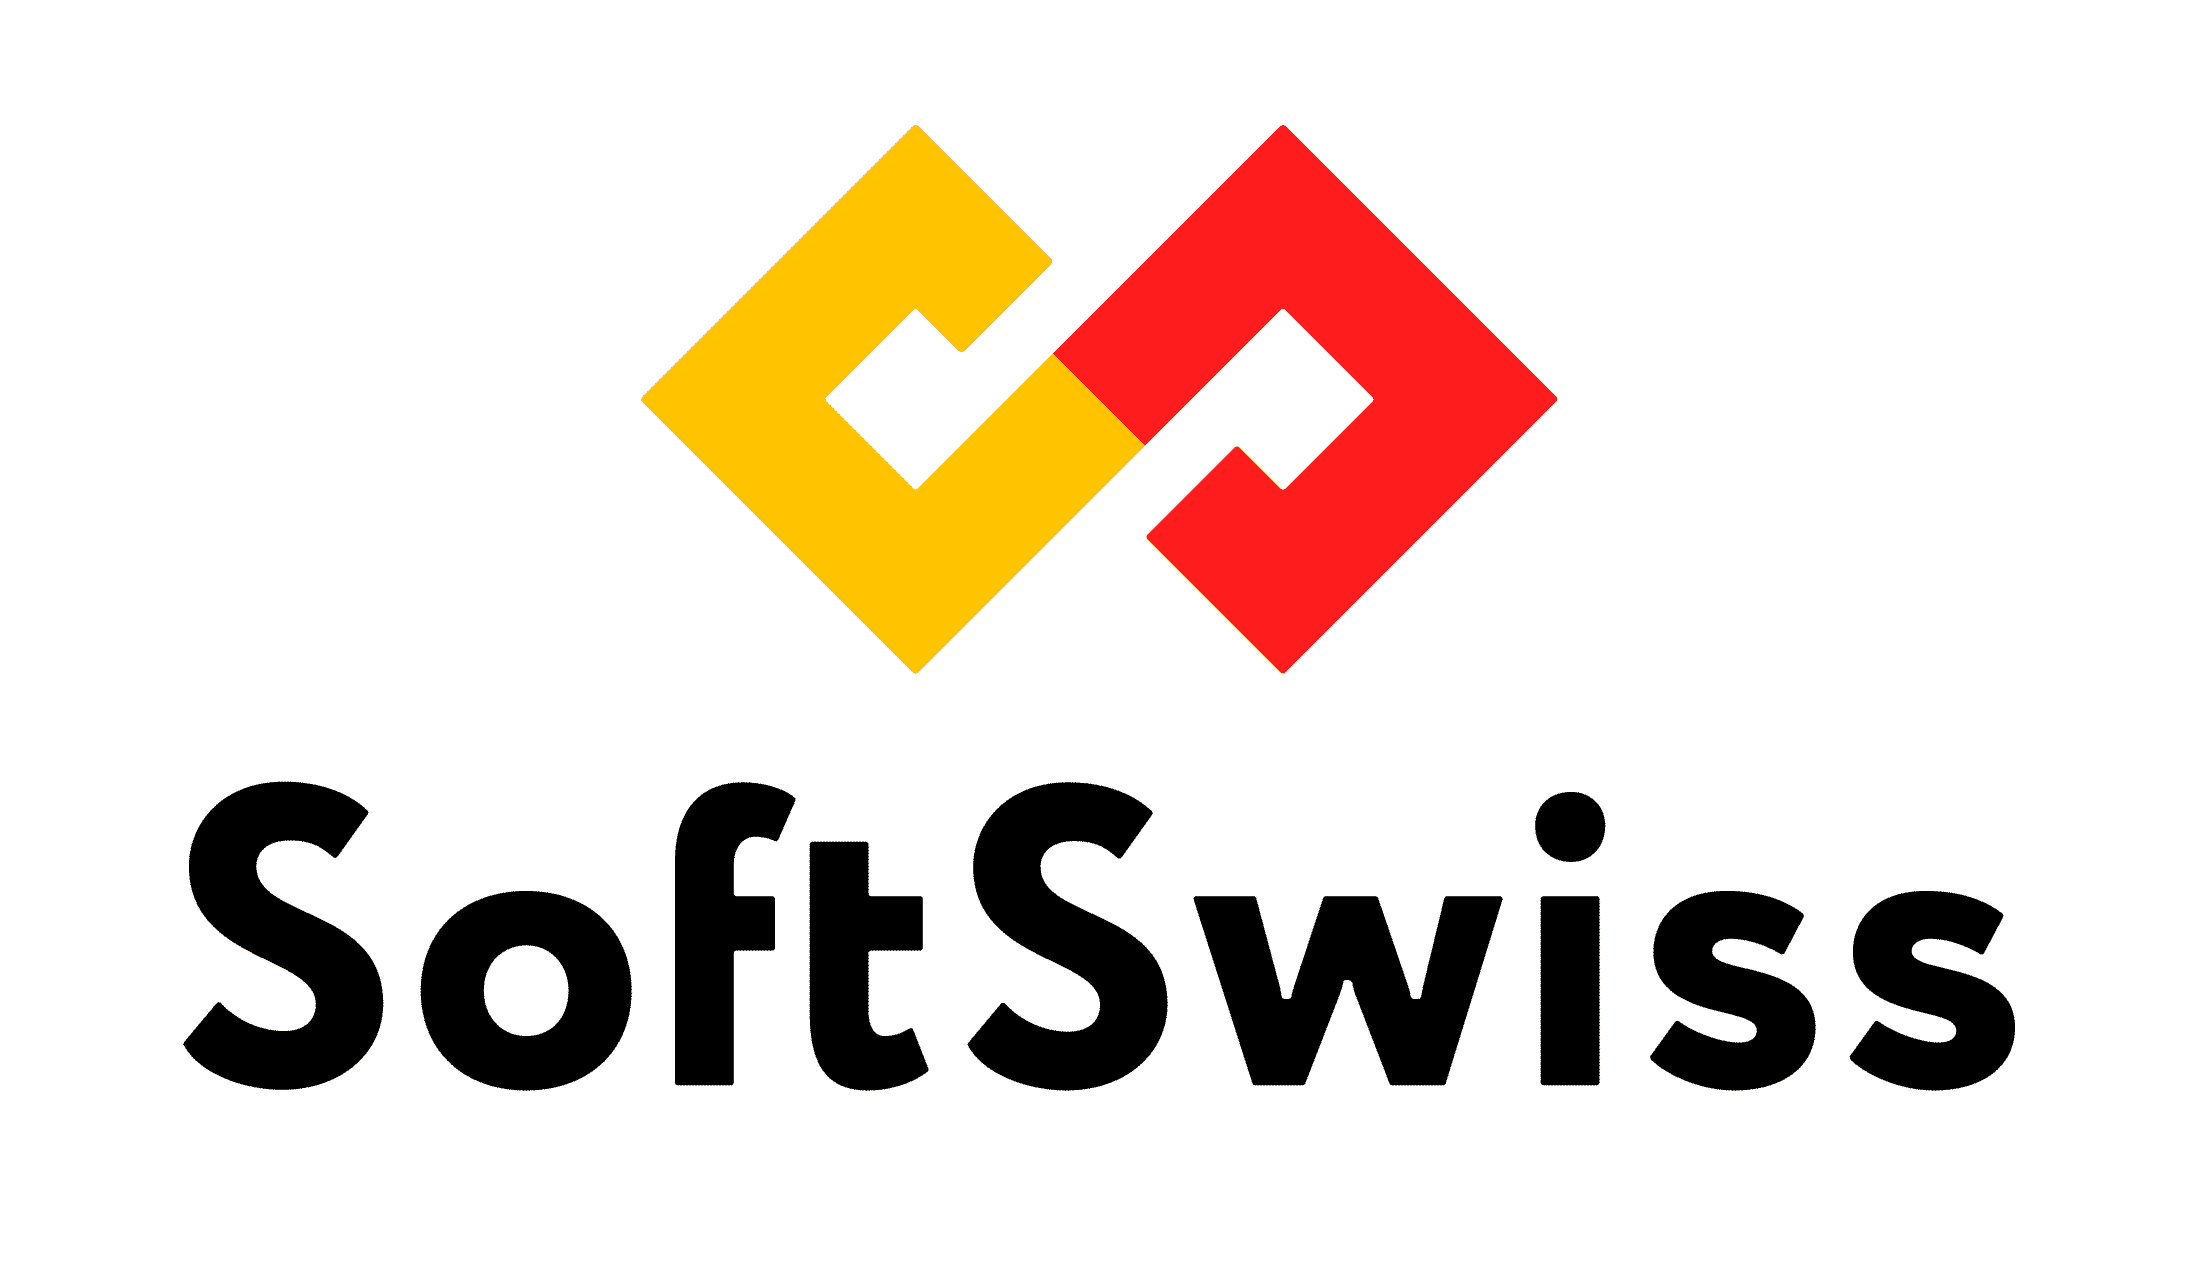 SoftSwiss best online casino software provider for Australians